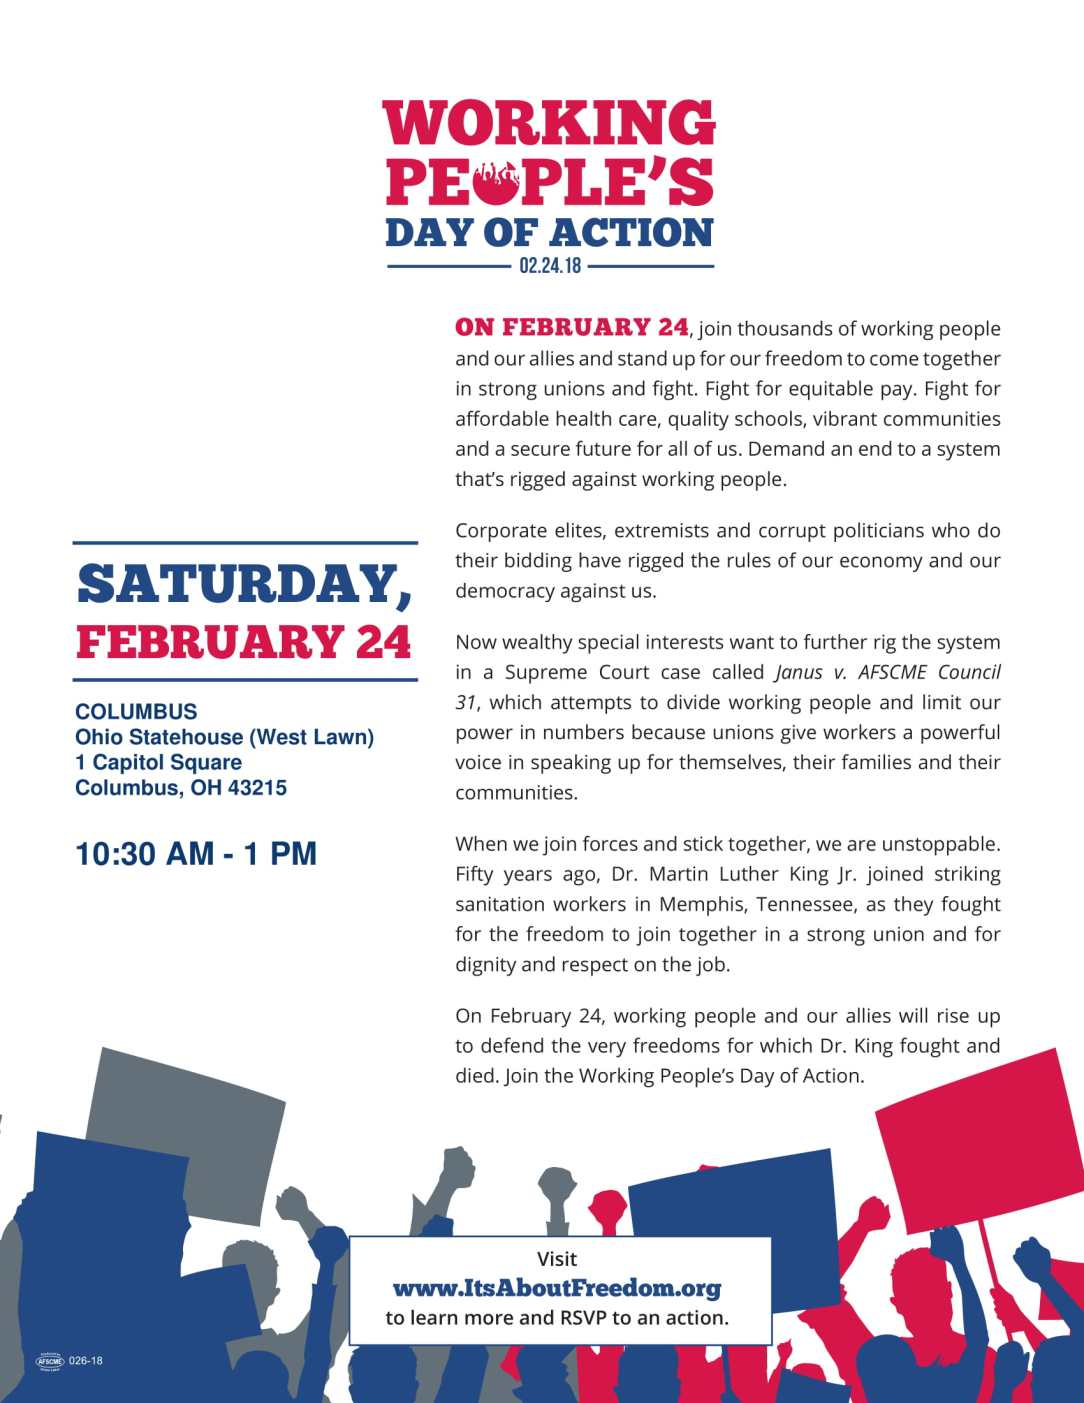 Working People's Day of Action Flyer